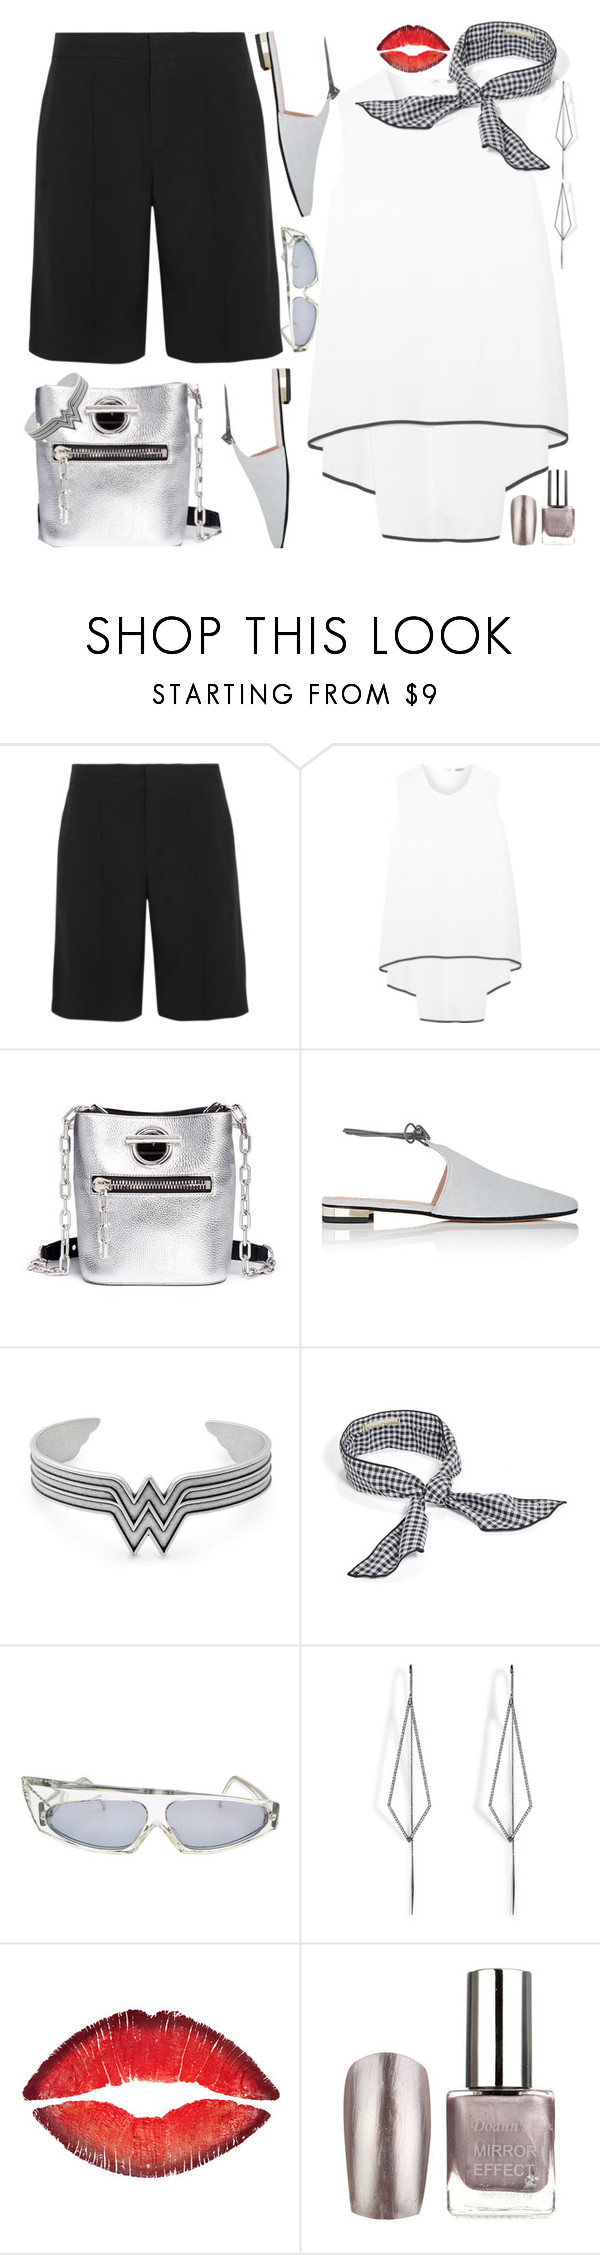 """Black/White/Silver & Lips"" by petalp ❤ liked on Polyvore featuring Chloé, ADAM, Alexander Wang, Barneys New York, Alex and Ani, BaubleBar, Alain Mikli, Diane Kordas, Givenchy and 60secondstyle"